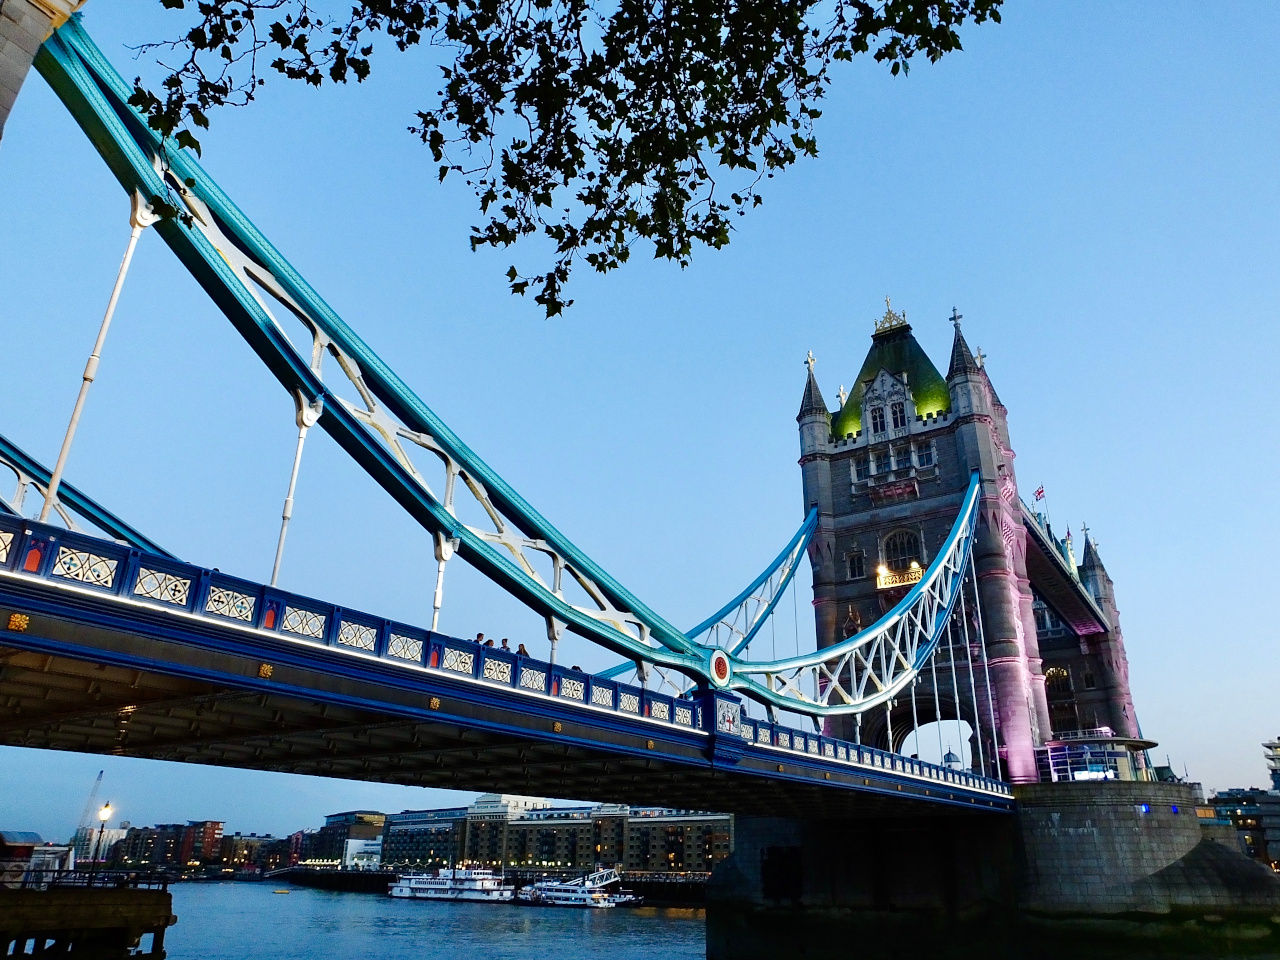 Tower Bridge is one of the London landmarks that you should include on your 3-day London itinerary